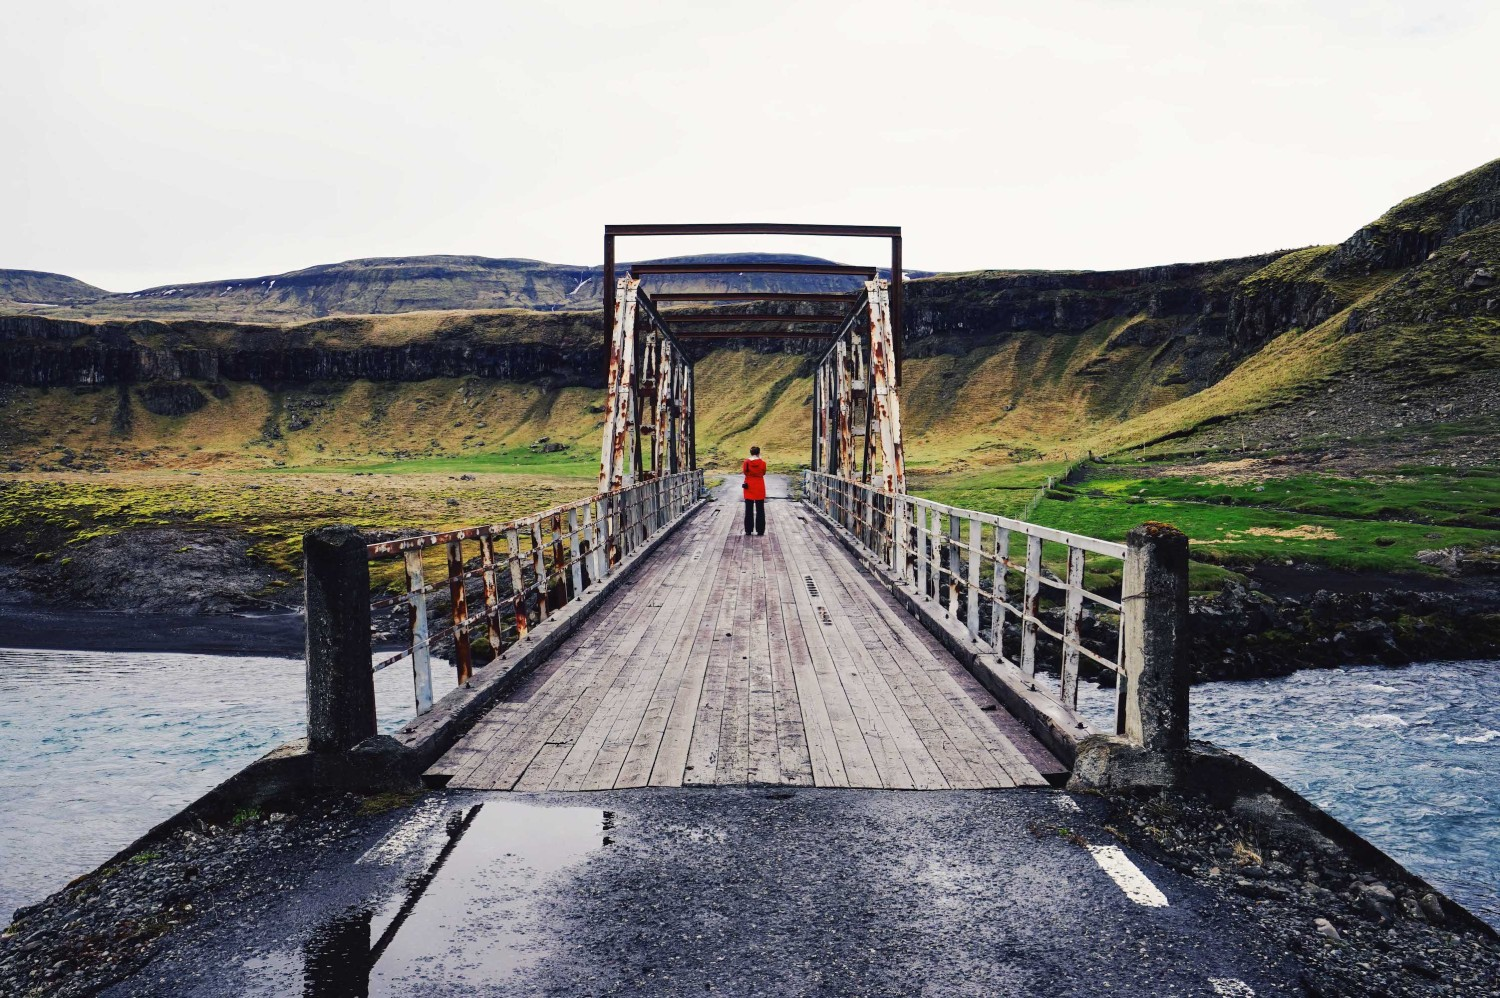 iceland-abandoned-bridge-dante-vincent-photography-41